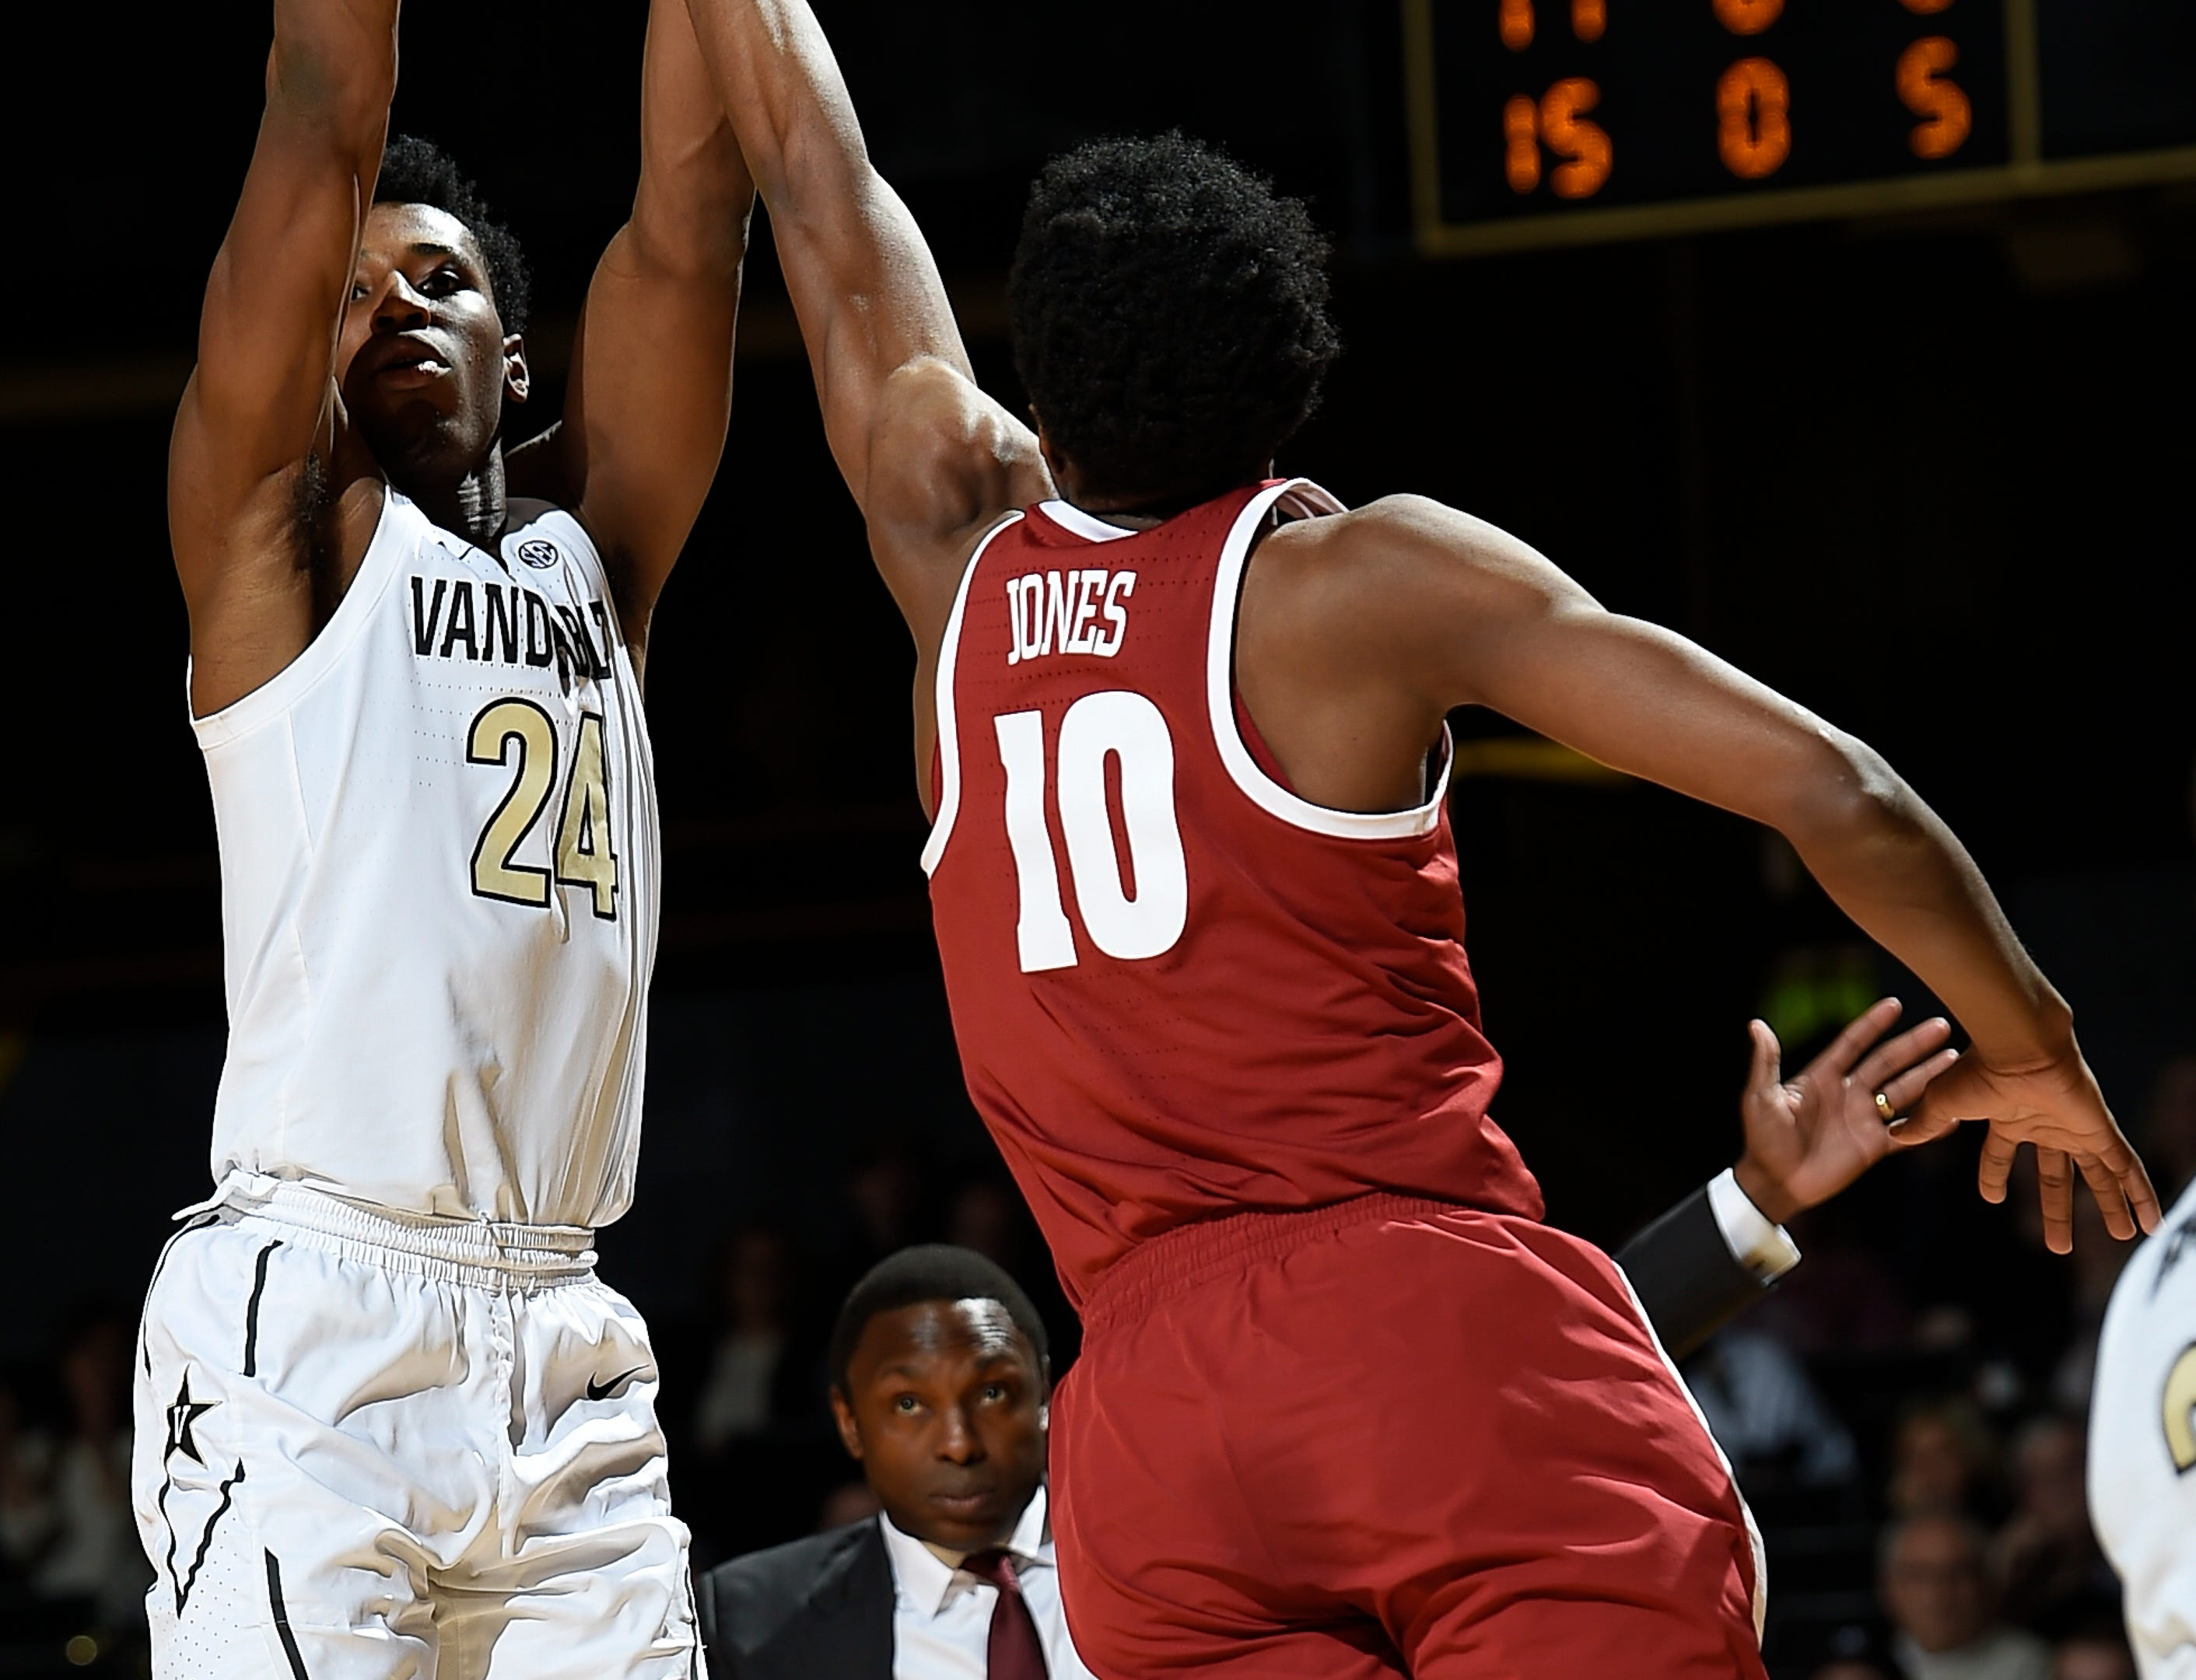 Vanderbilt forward Aaron Nesmith (24) shoots over Alabama guard Herbert Jones (10) during the first half at Memorial Gym Saturday Feb. 9, 2019 in Nashville, Tenn.